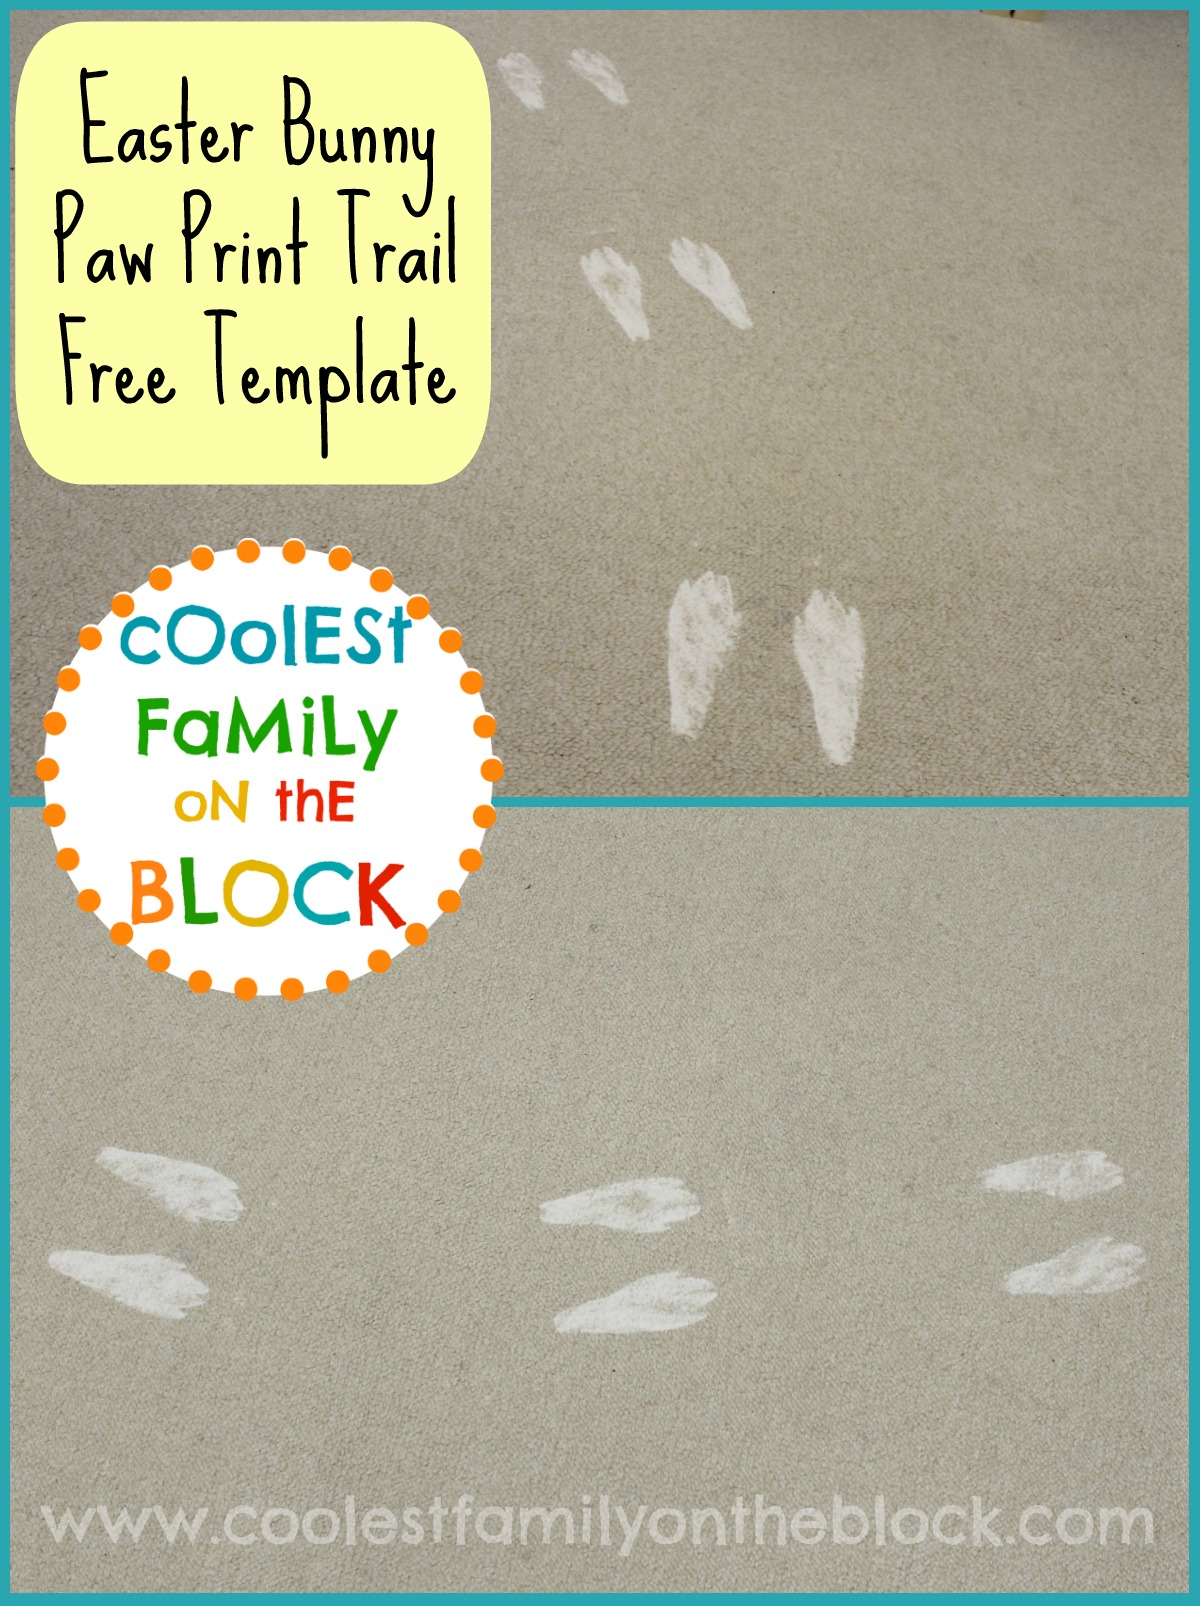 Easter Bunny Footprints Printable Diy easter bunny paw prints